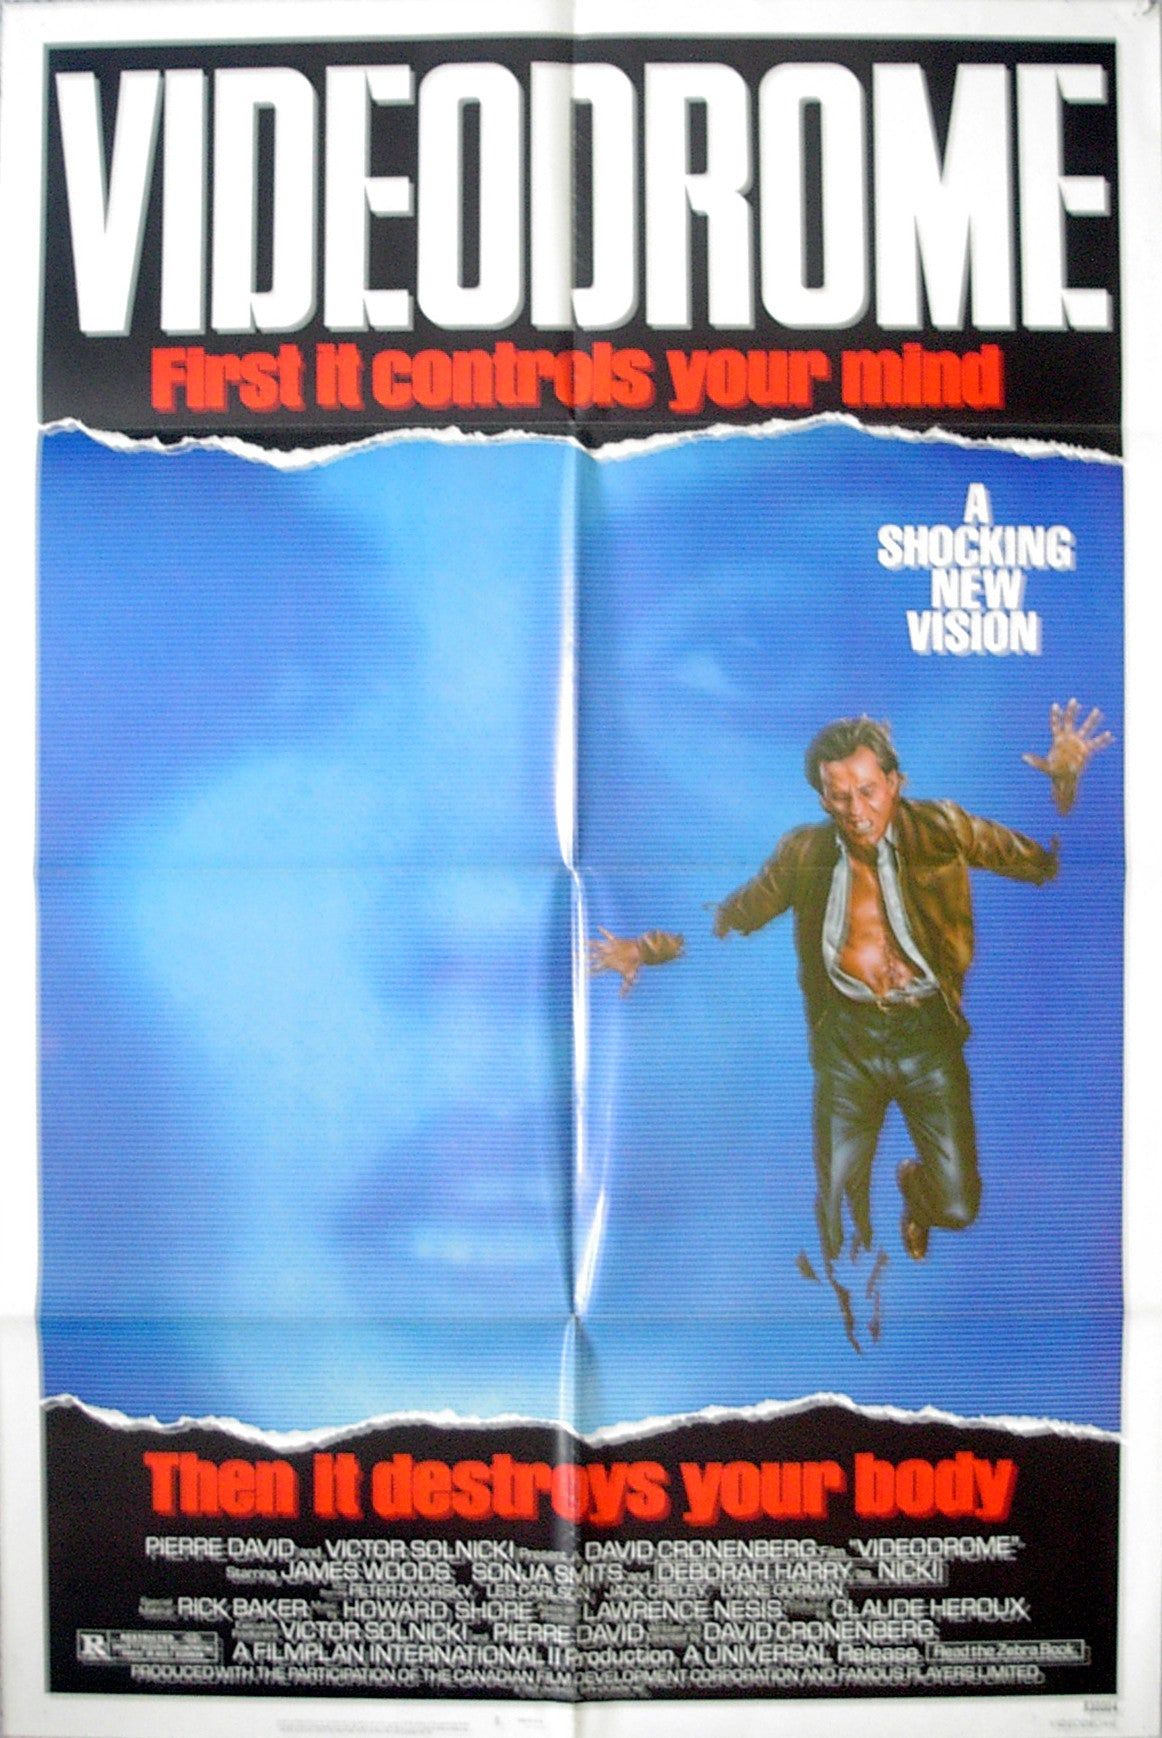 VIDEODROME - US one-sheet poster